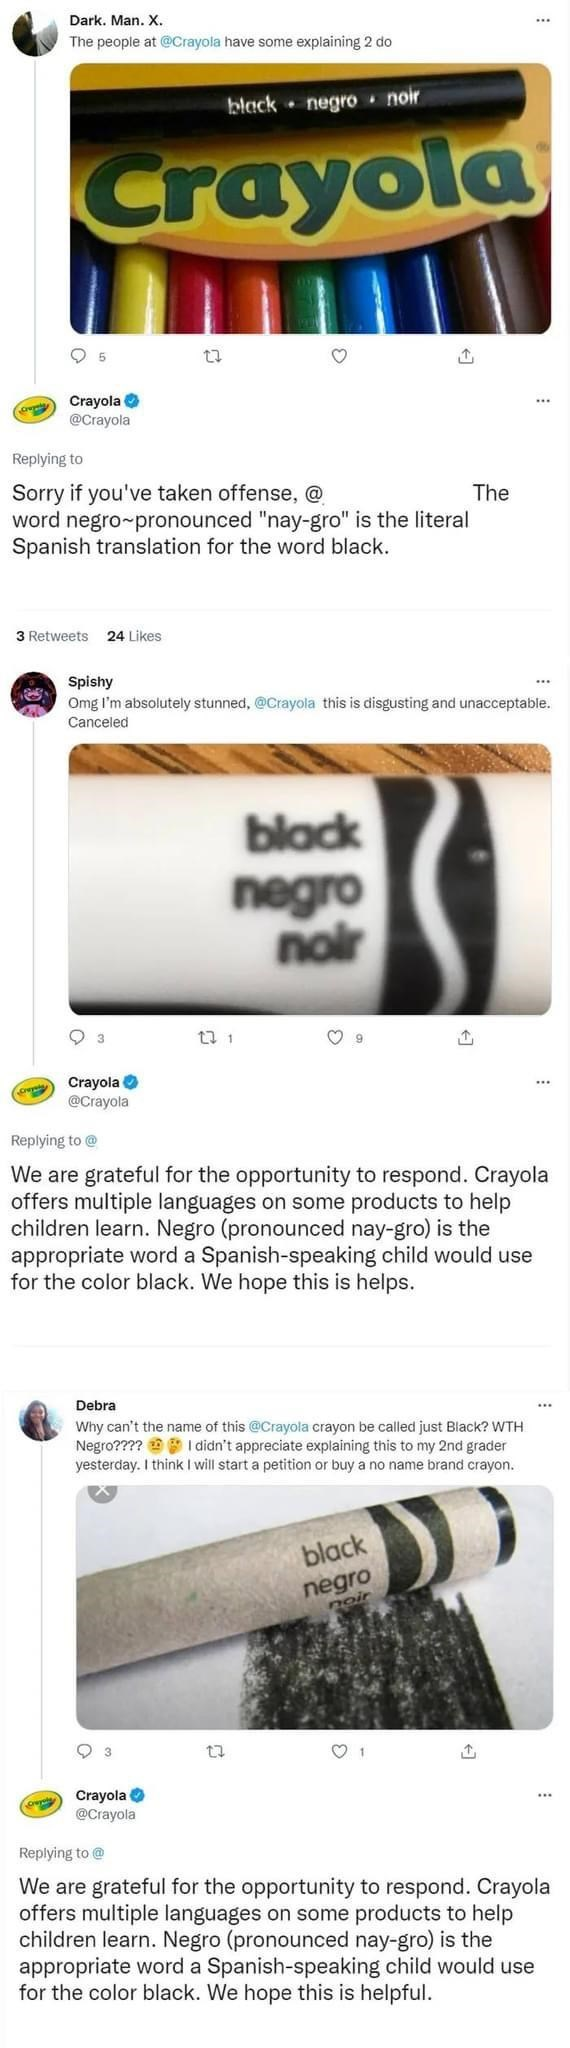 """Font - Dark. Man. X. ... The people at @Crayola have some explaining 2 do black negro noir Crayola Crayola O @Crayola Replying to Sorry if you've taken offense, @ word negro-pronounced """"nay-gro"""" is the literal Spanish translation for the word black. The 3 Retweets 24 Likes Spishy Omg I'm absolutely stunned, @Crayola this is disgusting and unacceptable. Canceled ... black negro noir Crayola O @Crayola Replying to @ We are grateful for the opportunity to respond. Crayola offers multiple languages"""